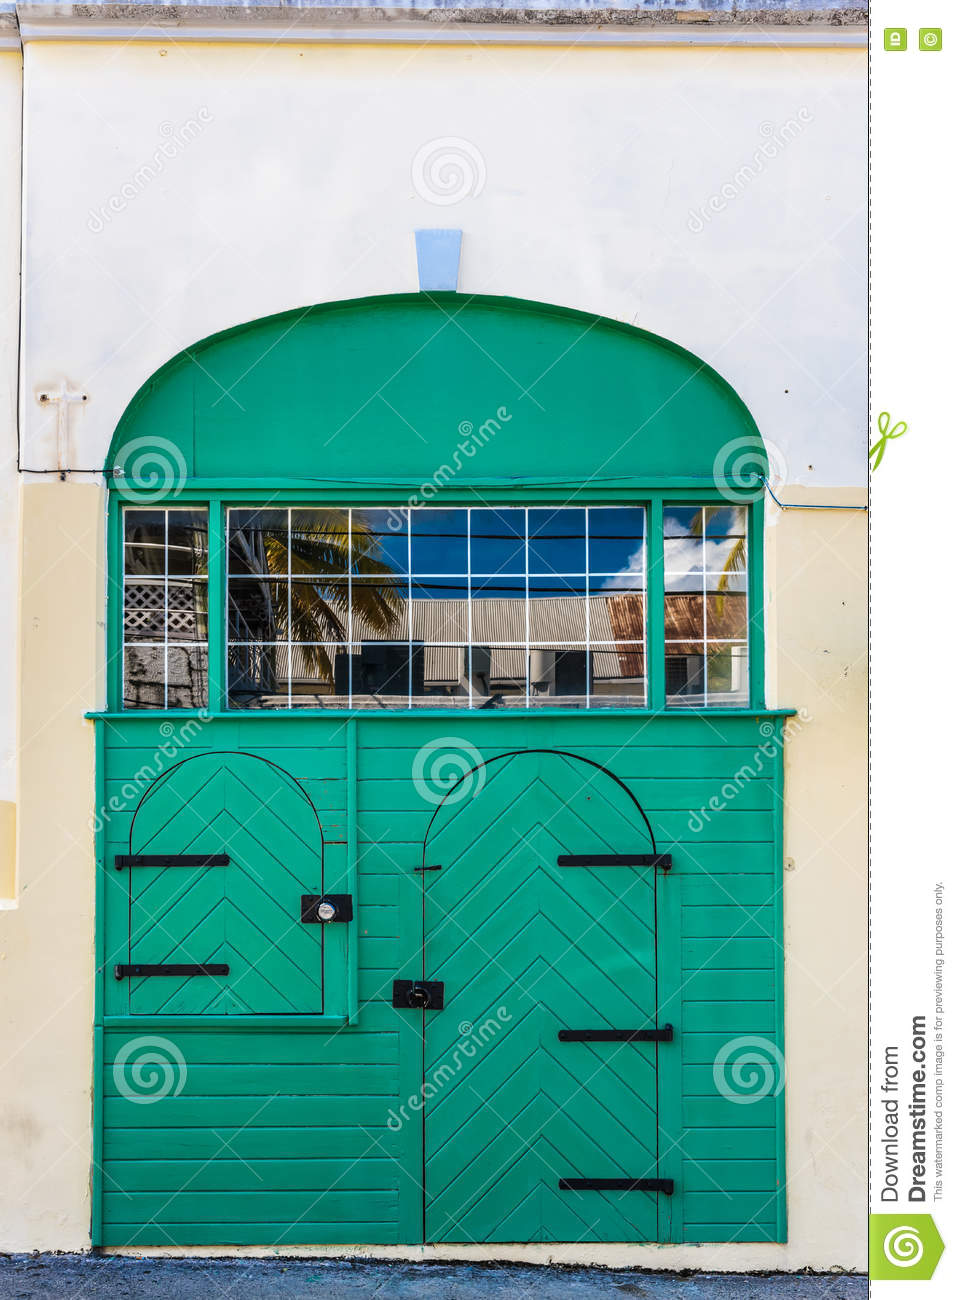 Double green door with archways and window reflection